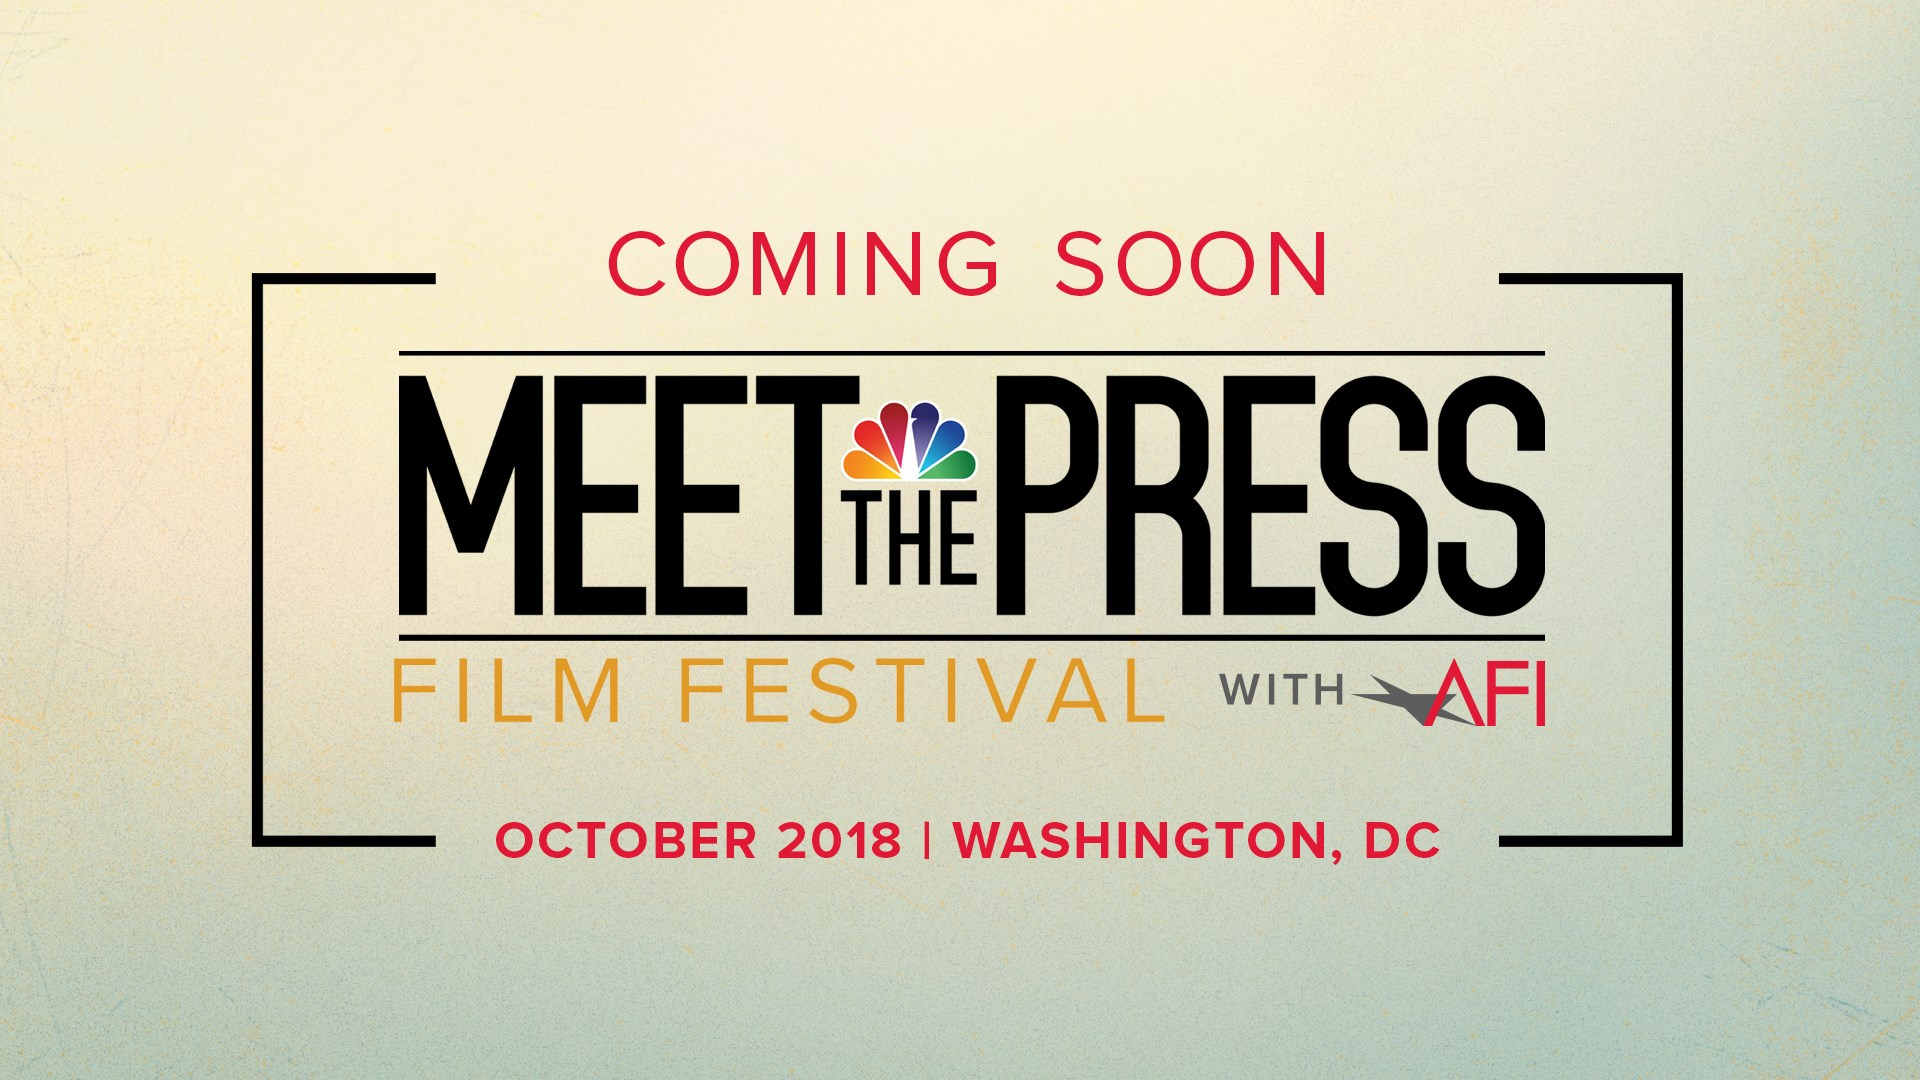 """Meet the Press"" Film Festival is Coming Up this October"